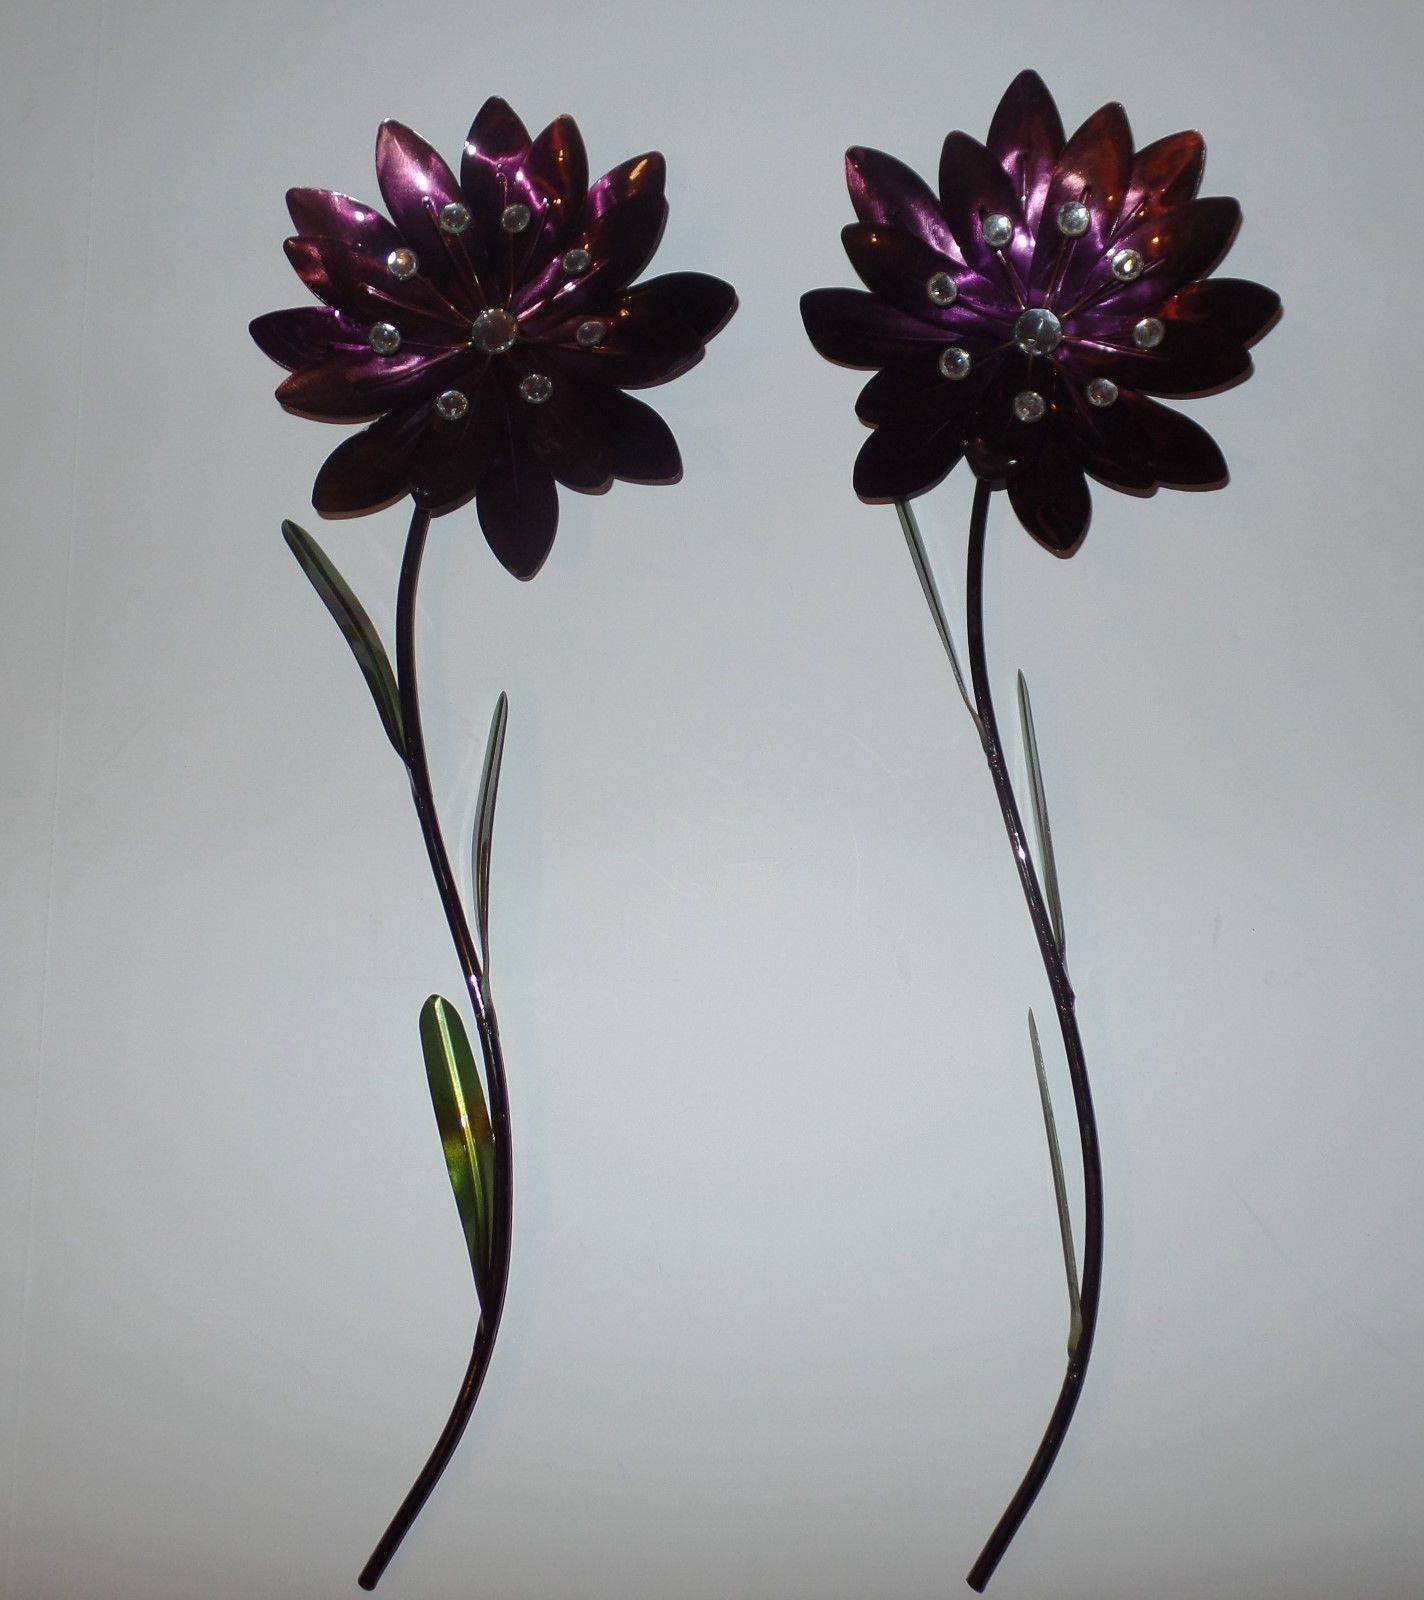 Decorative Metal Flowers Wall Sculpture Art Home Décor (Set Of 2 Pertaining To Current Purple Flower Metal Wall Art (View 9 of 25)